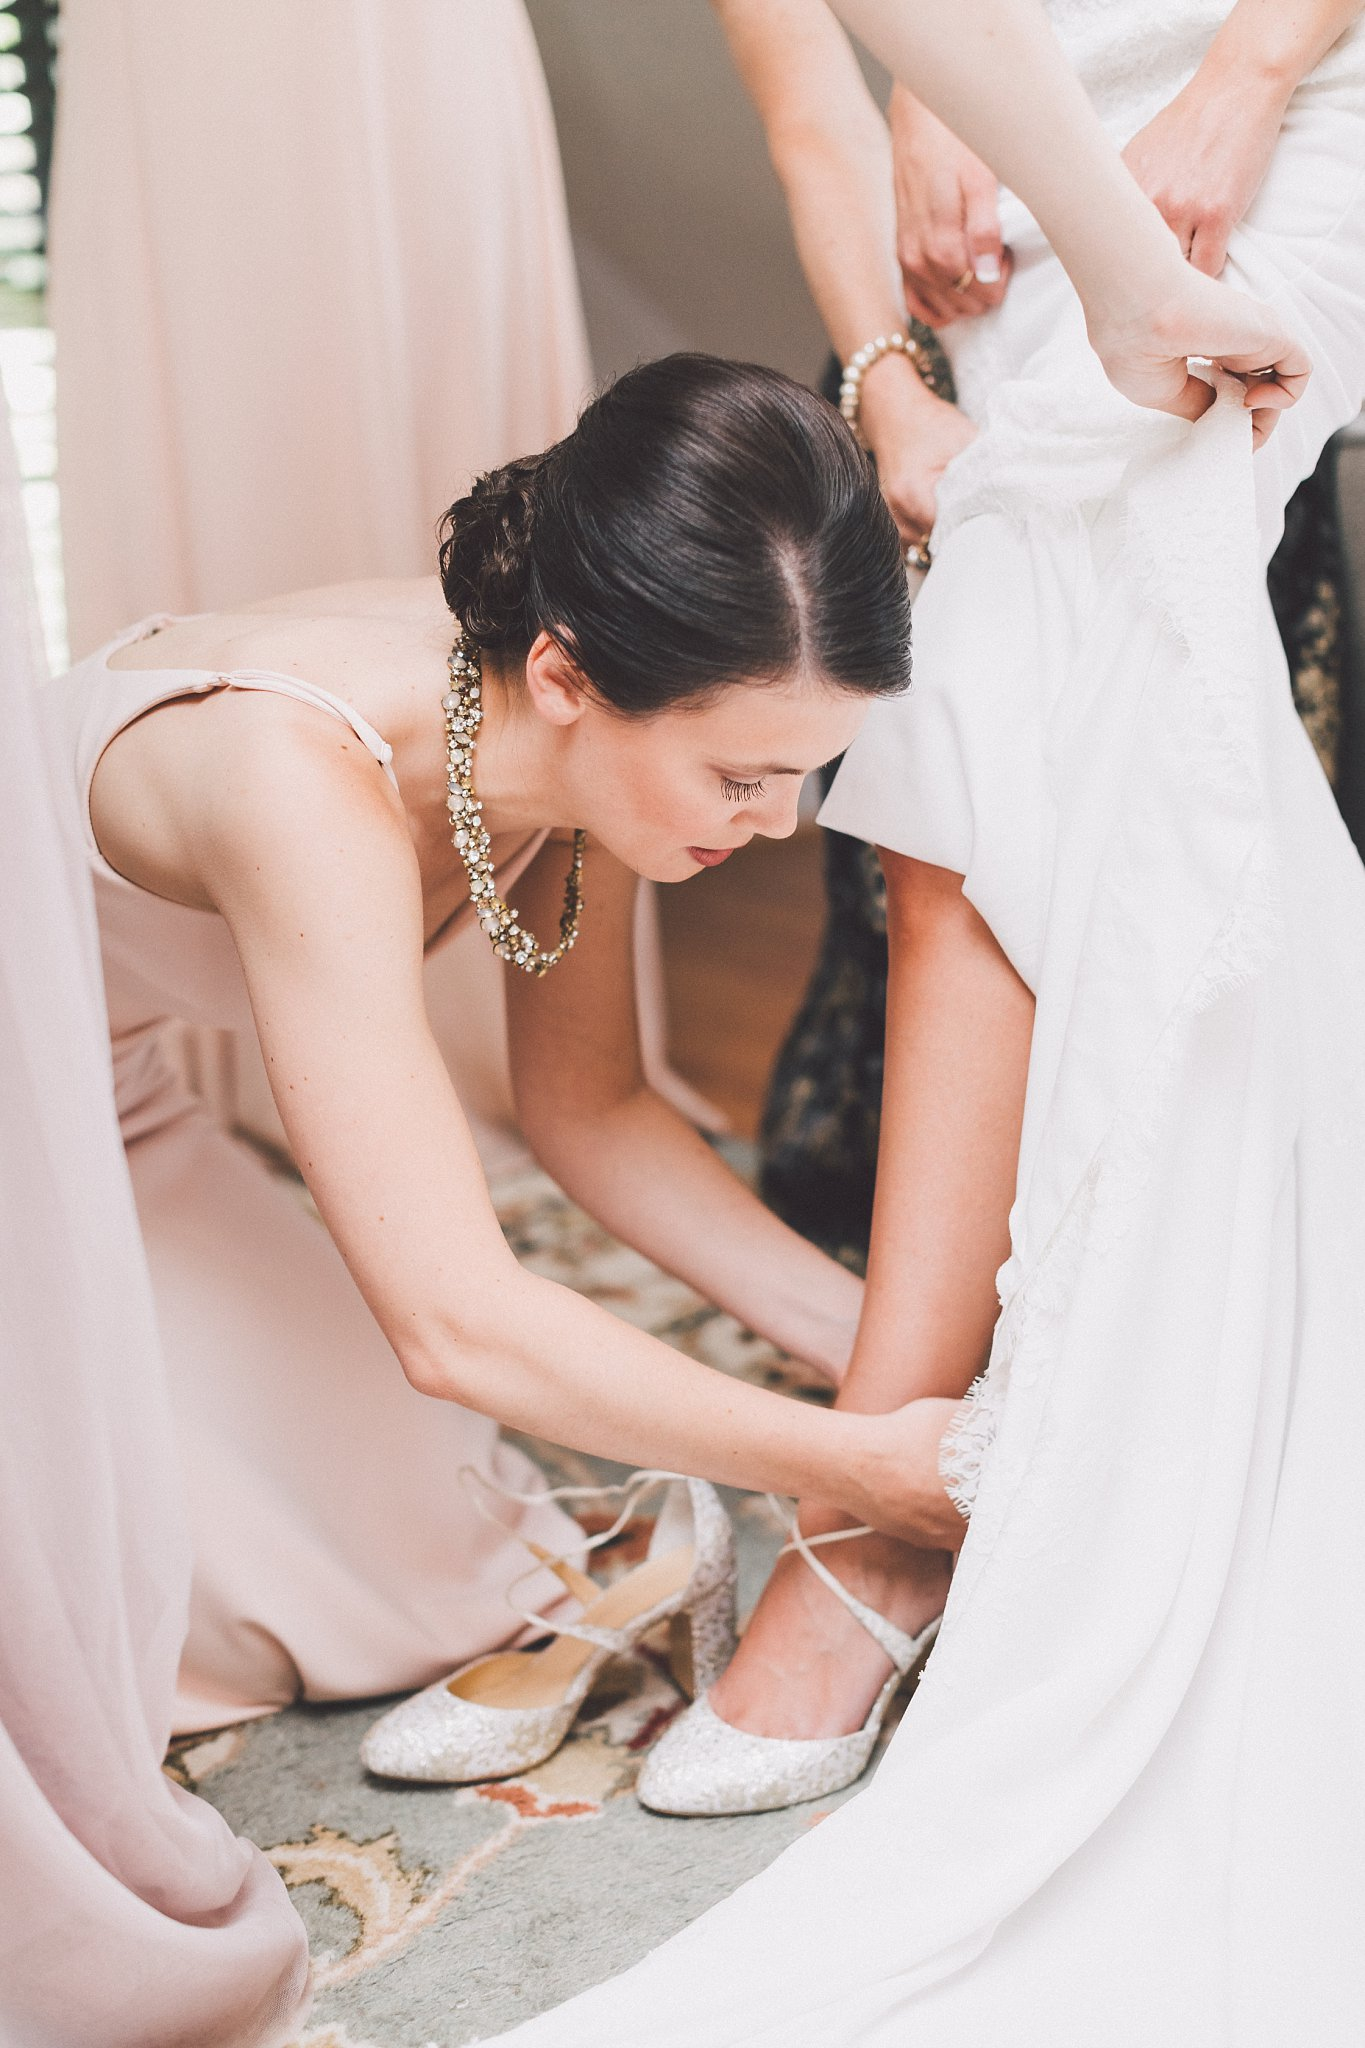 finger lakes wedding photography larkin and trevor_0023.jpg